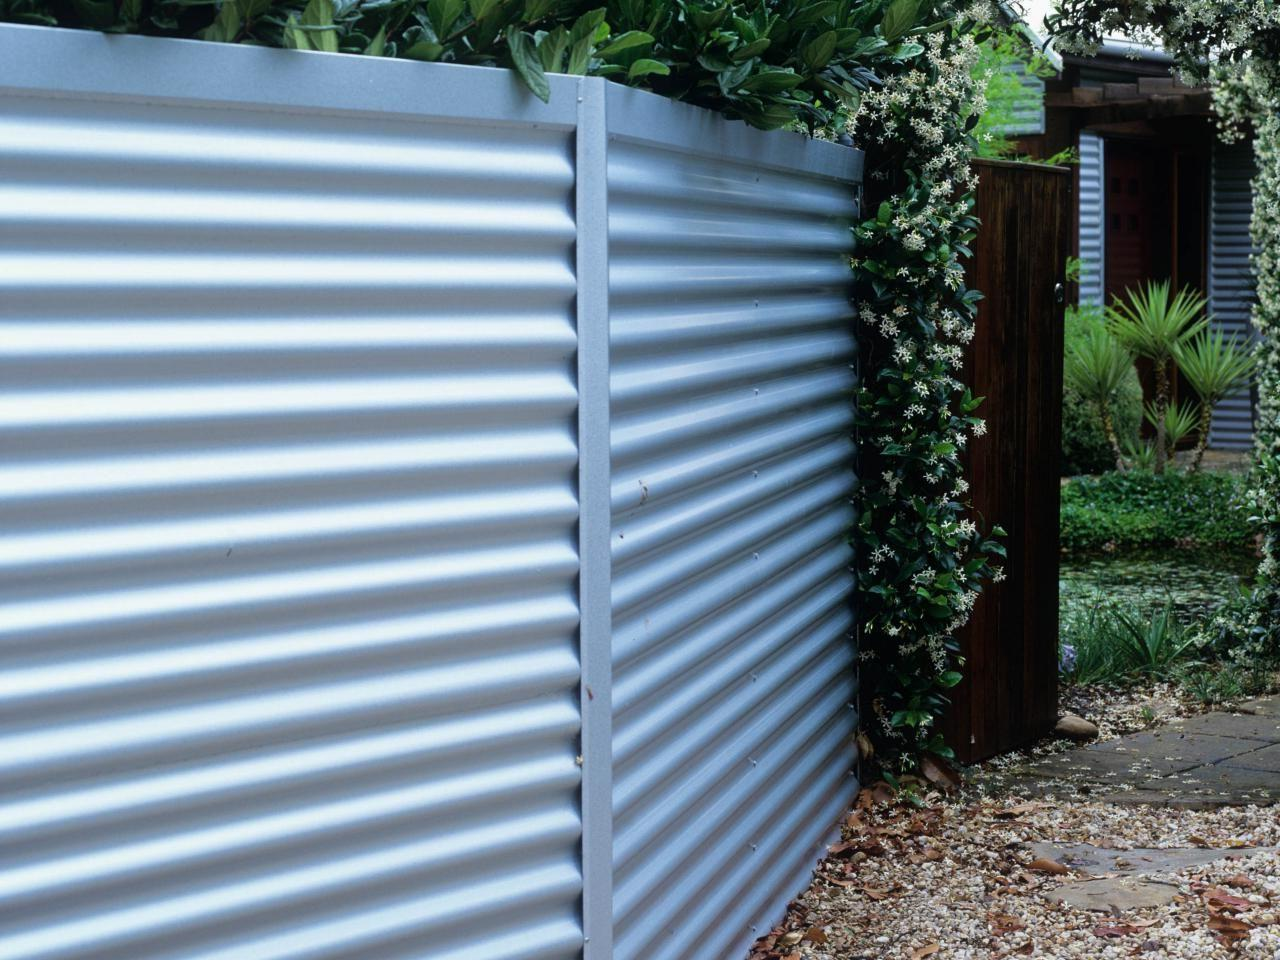 With proper installation and maintenance, the fence made of corrugated board will last for many years